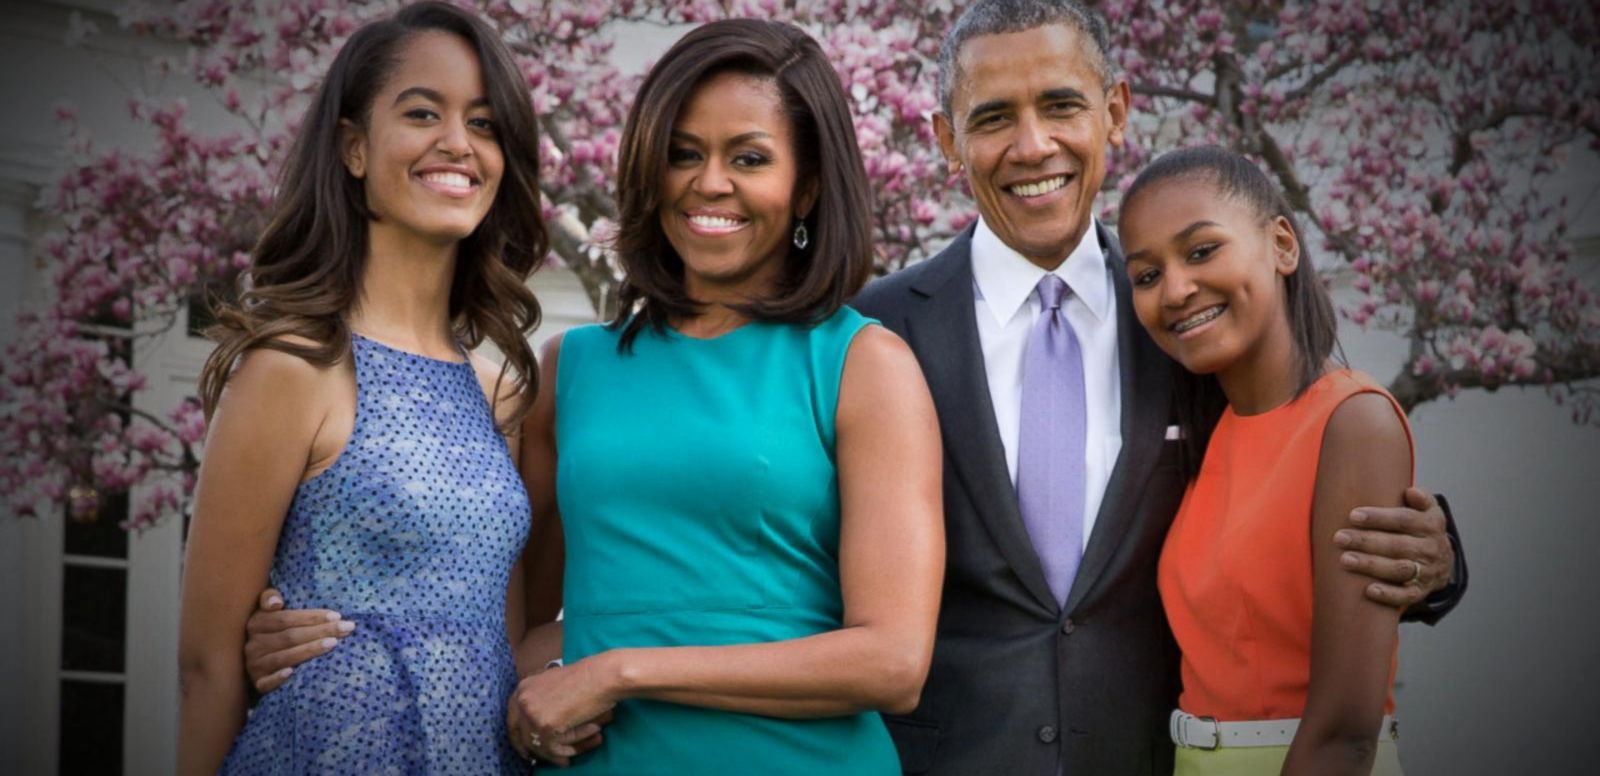 VIDEO: Index: The Obama's Plan for Life After the White House